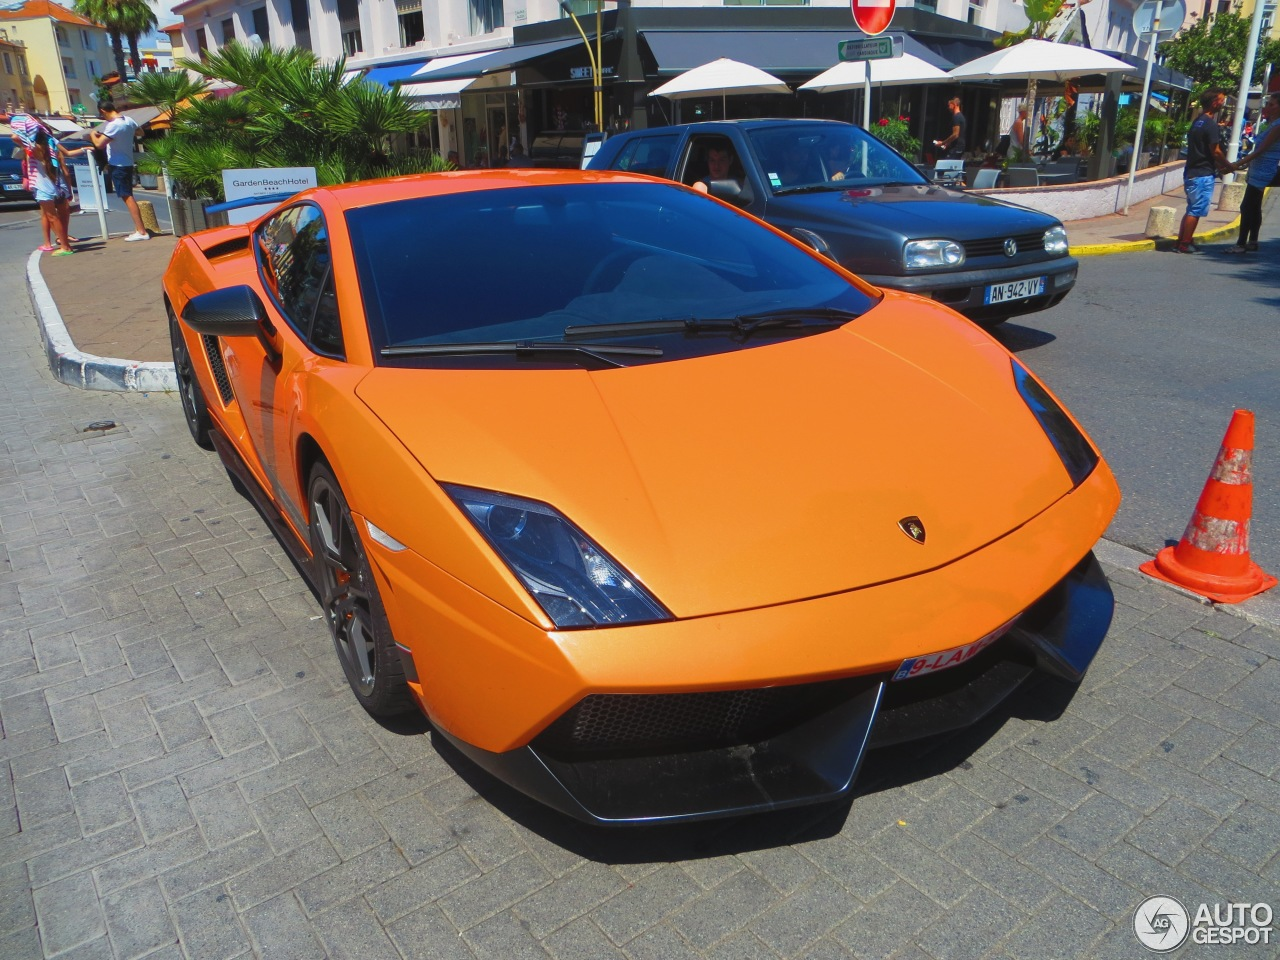 Lamborghini Gallardo LP570-4 Superleggera 6